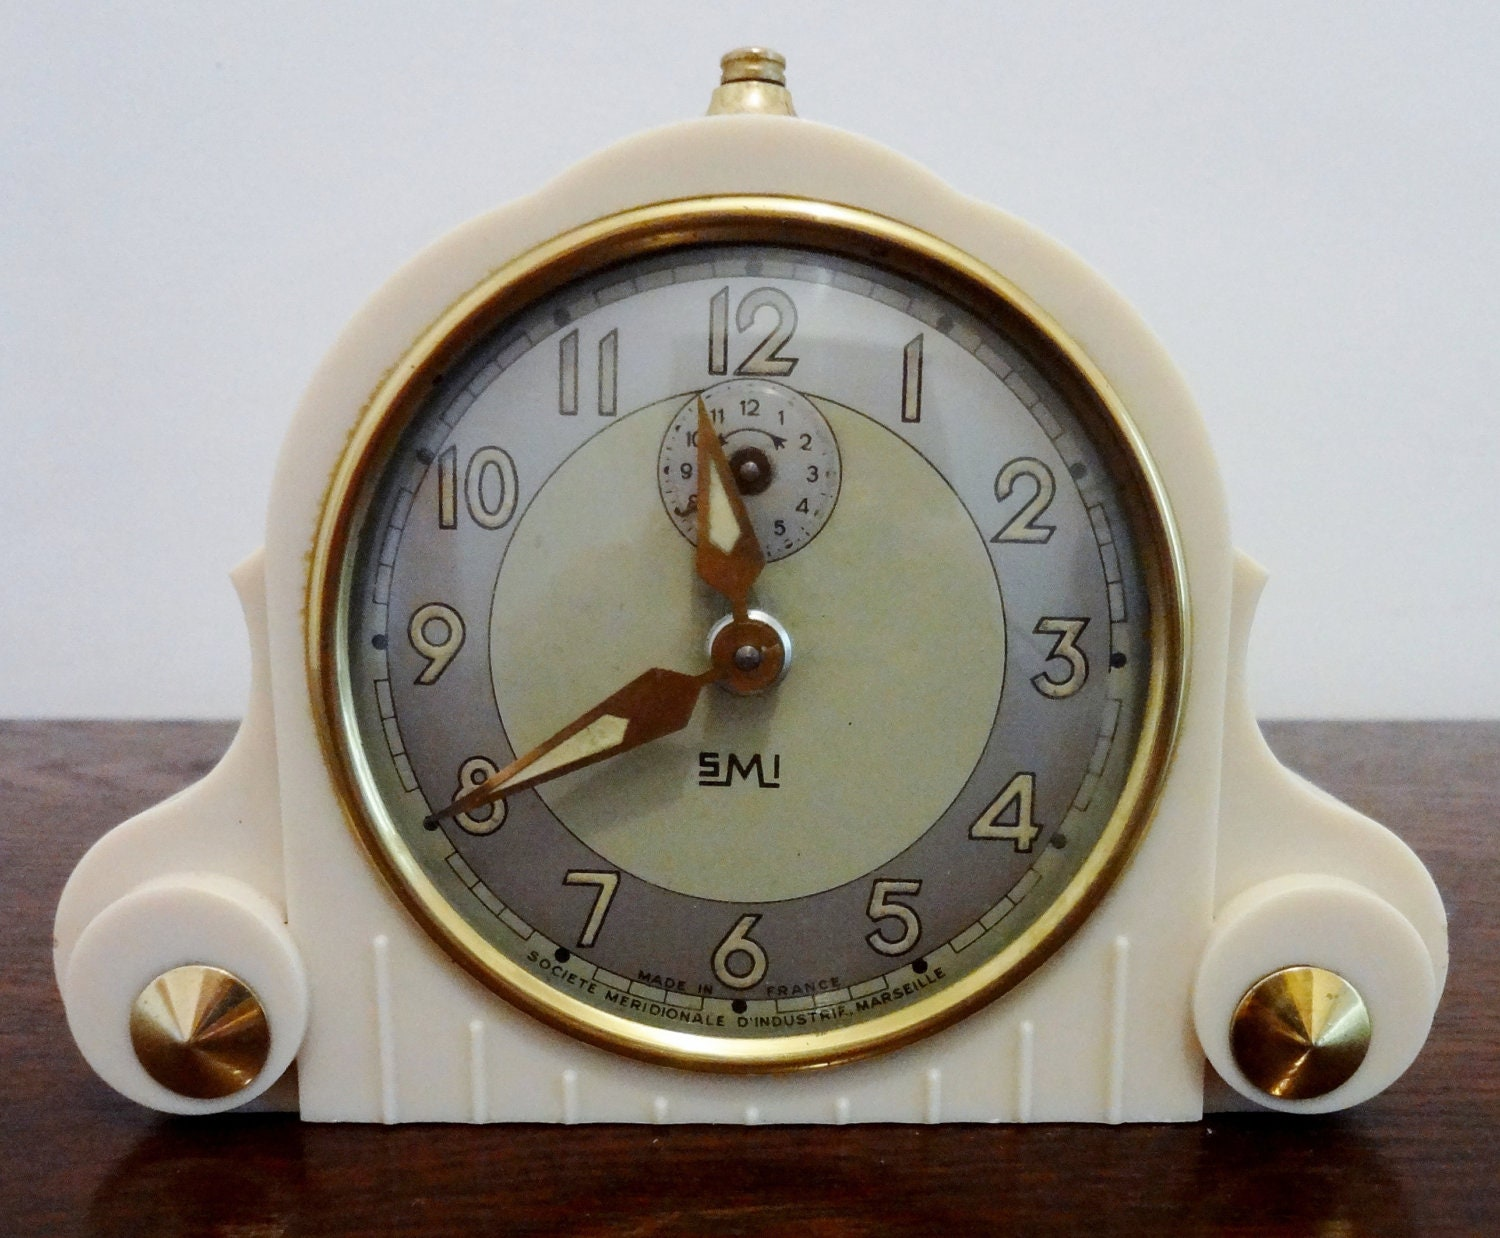 Original french art deco smi alarm clock functions Art deco alarm clocks